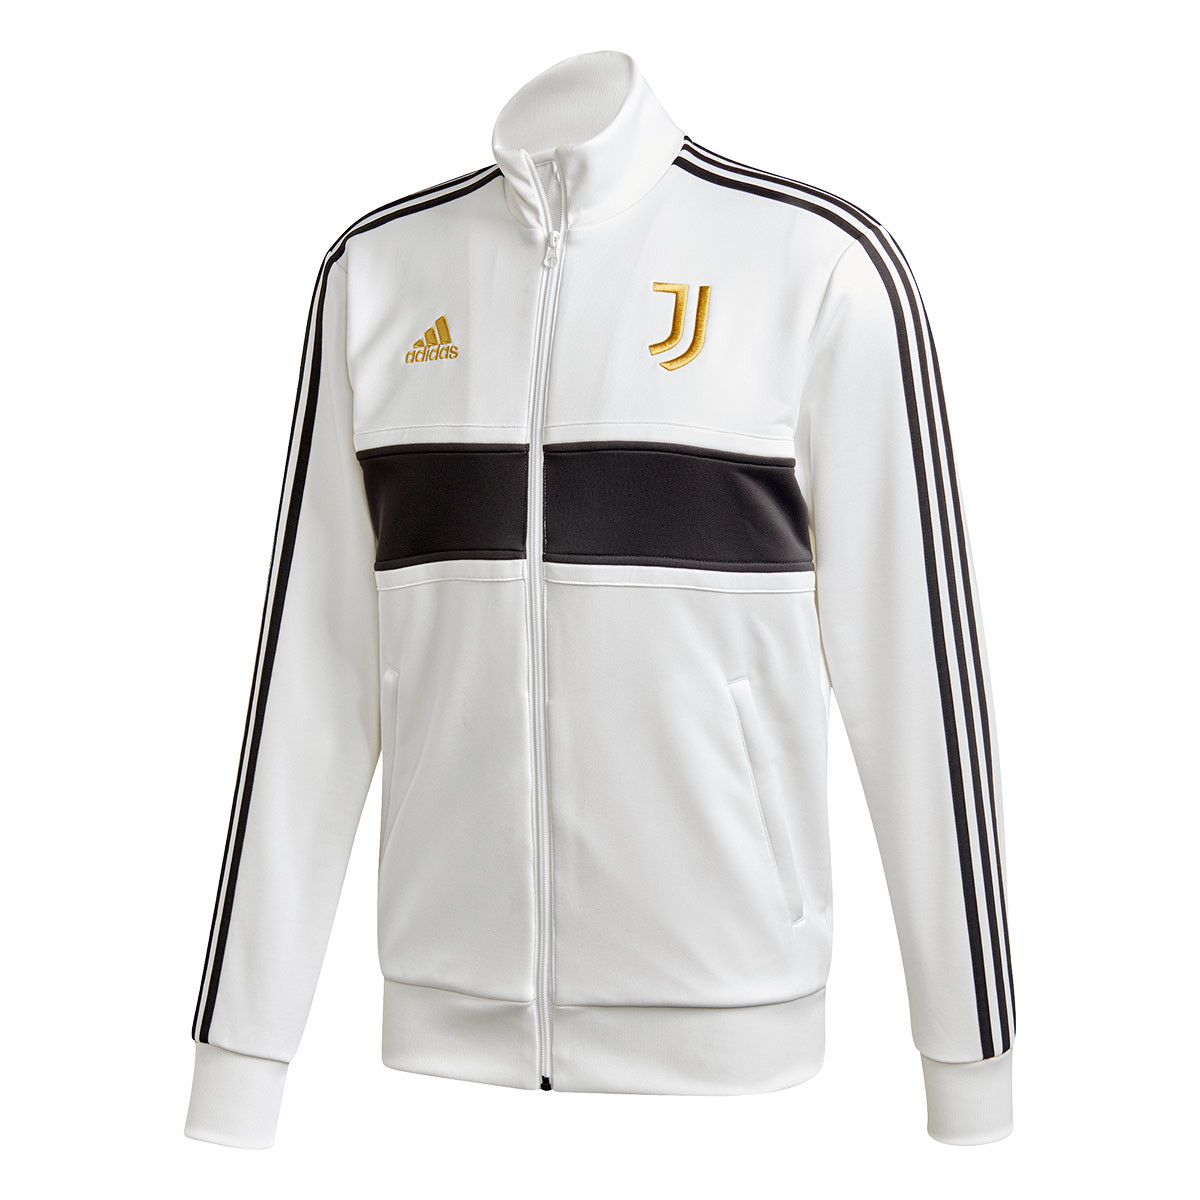 Jacket Adidas Juventus 3 Stripes Track 2020 2021 White Black Pyrite Football Store Futbol Emotion